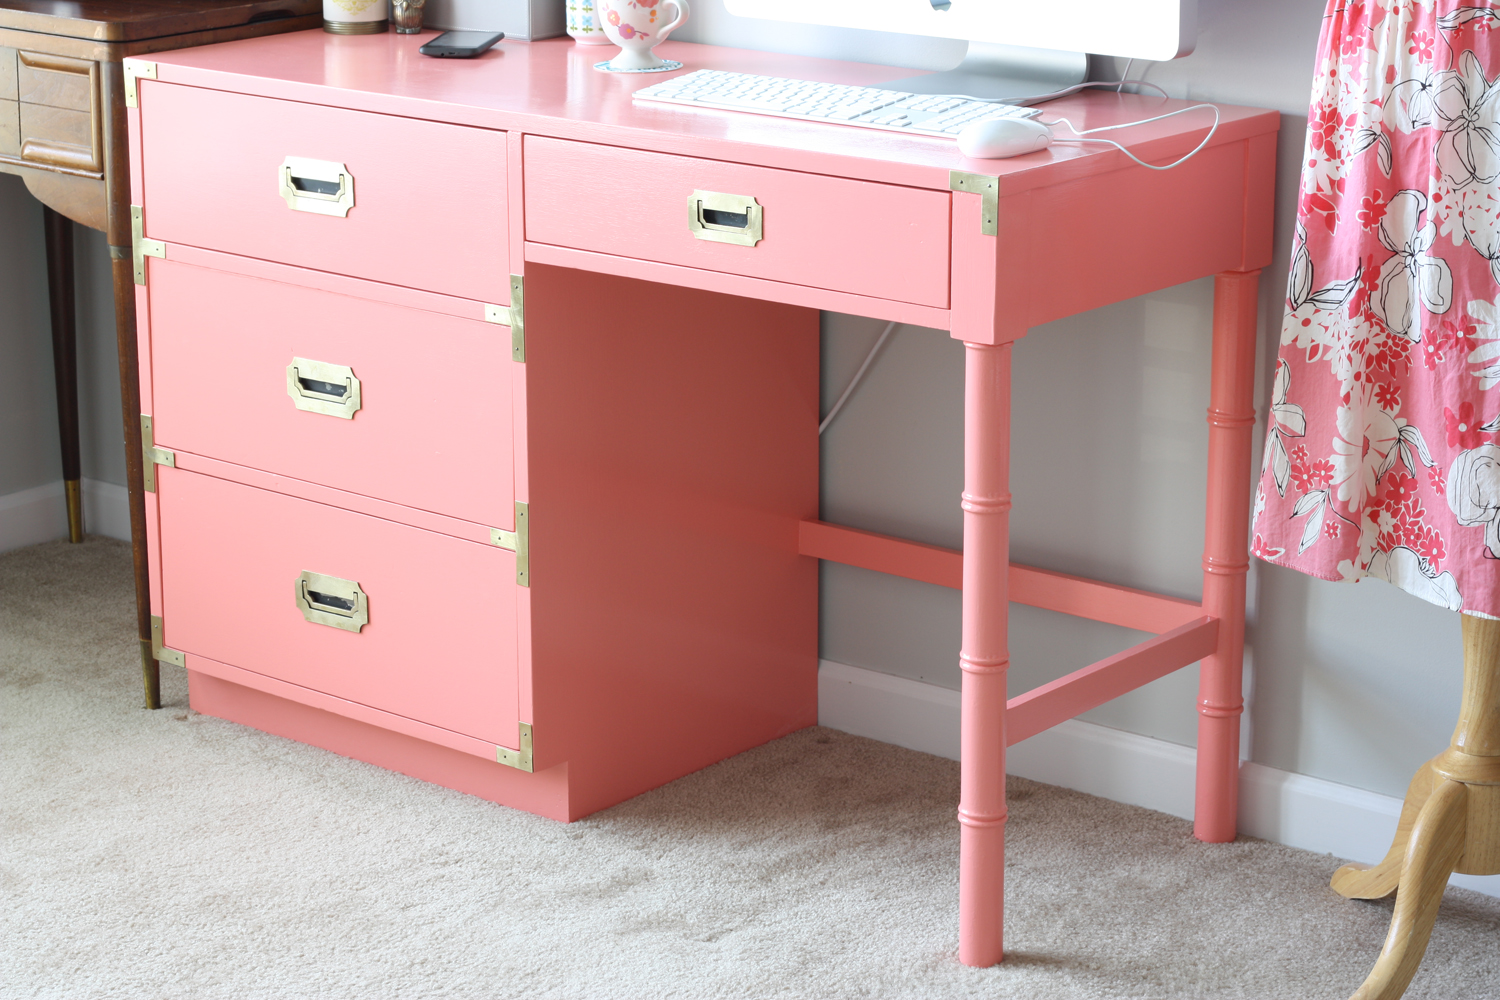 Vintage Campaign Desk Reveal - That Winsome Girl: Vintage Campaign Desk Reveal